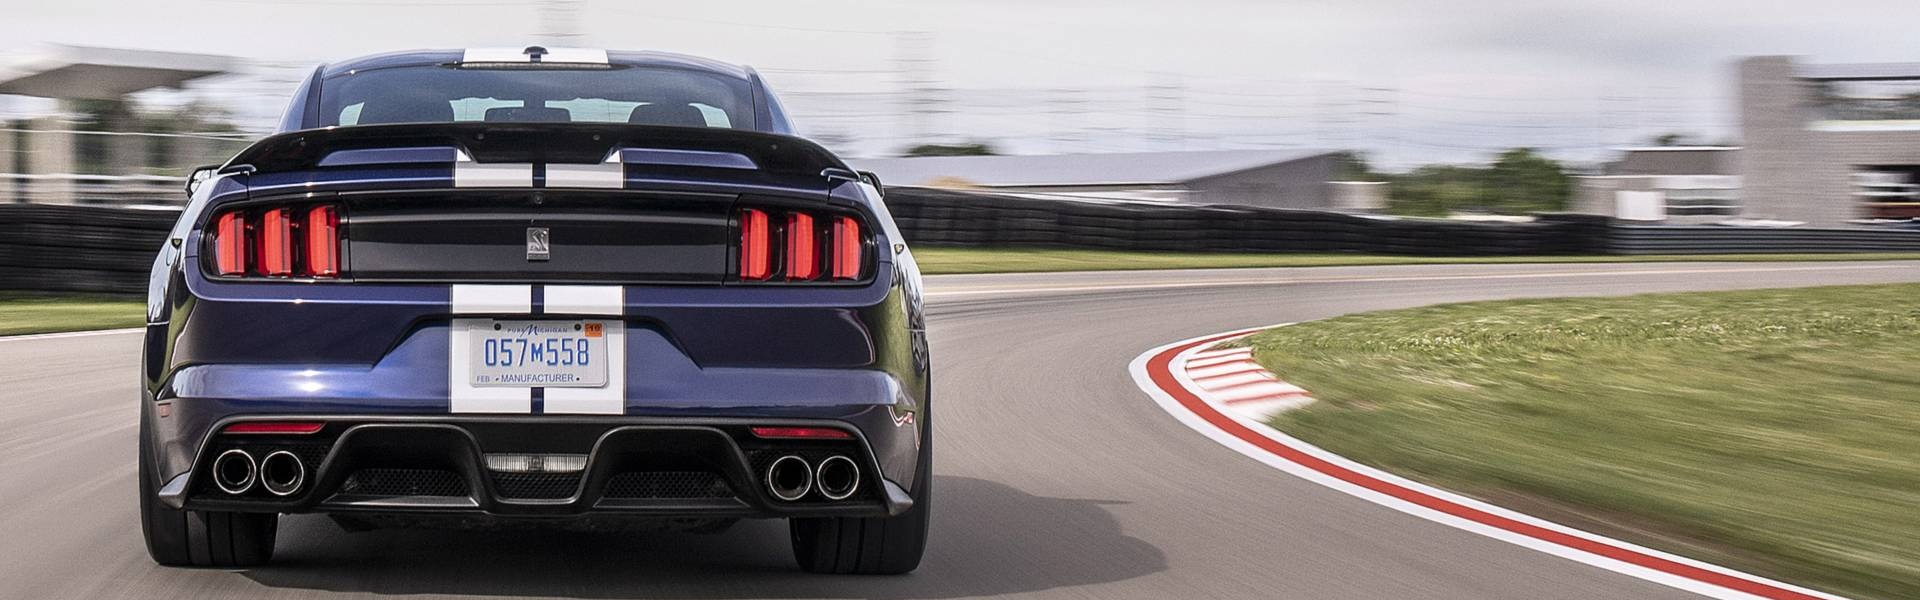 2019-ford-mustang-shelby-gt350 (2).jpg